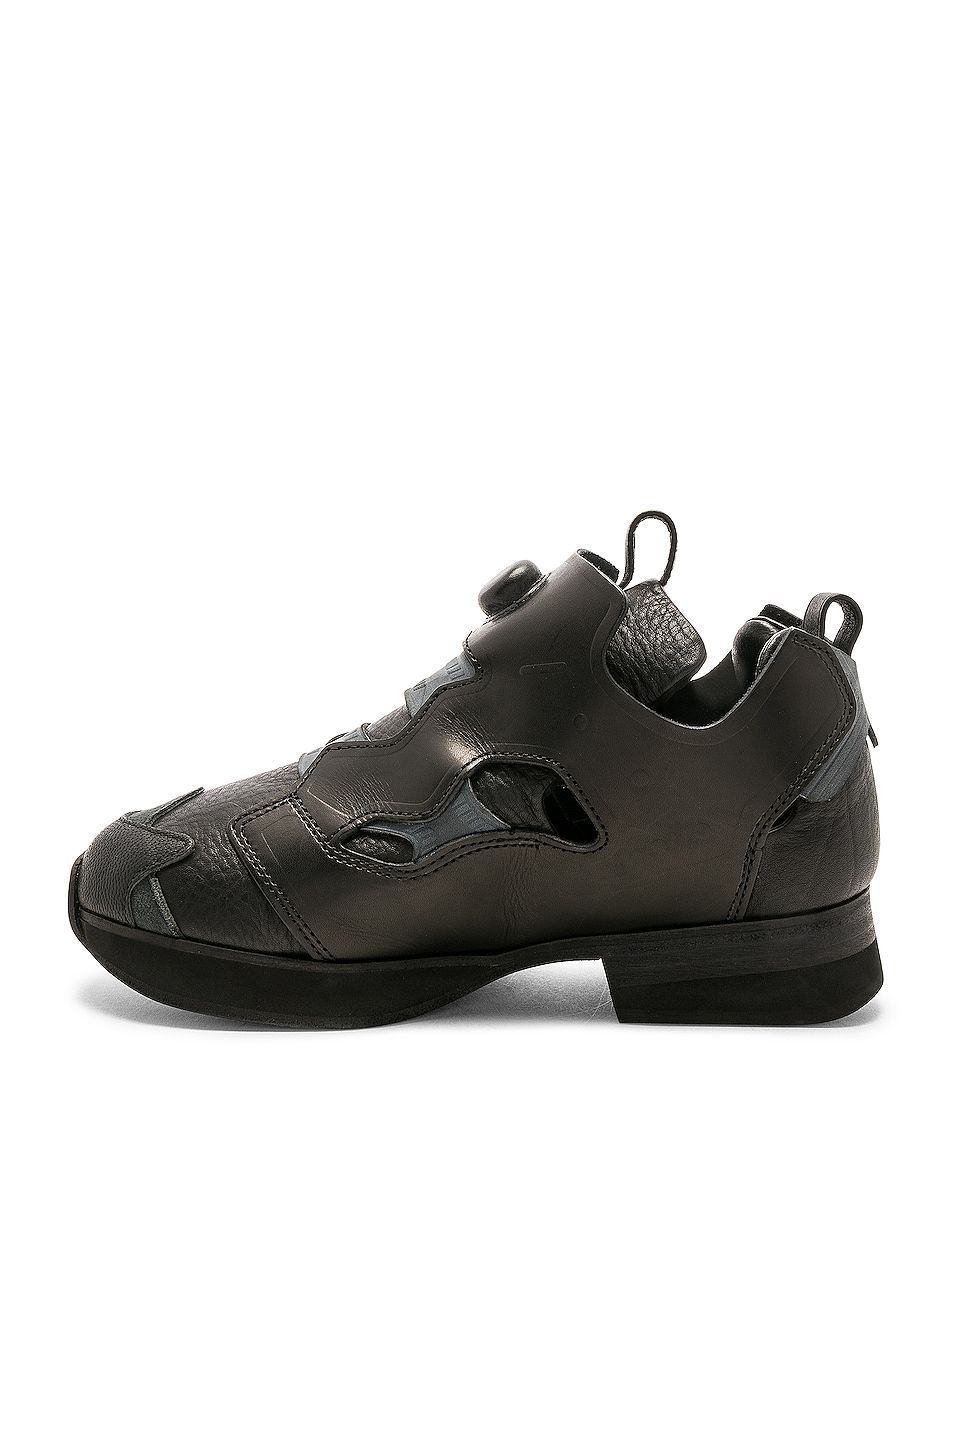 Image 5 of Hender Scheme Manual Industrial Product 15 in Black